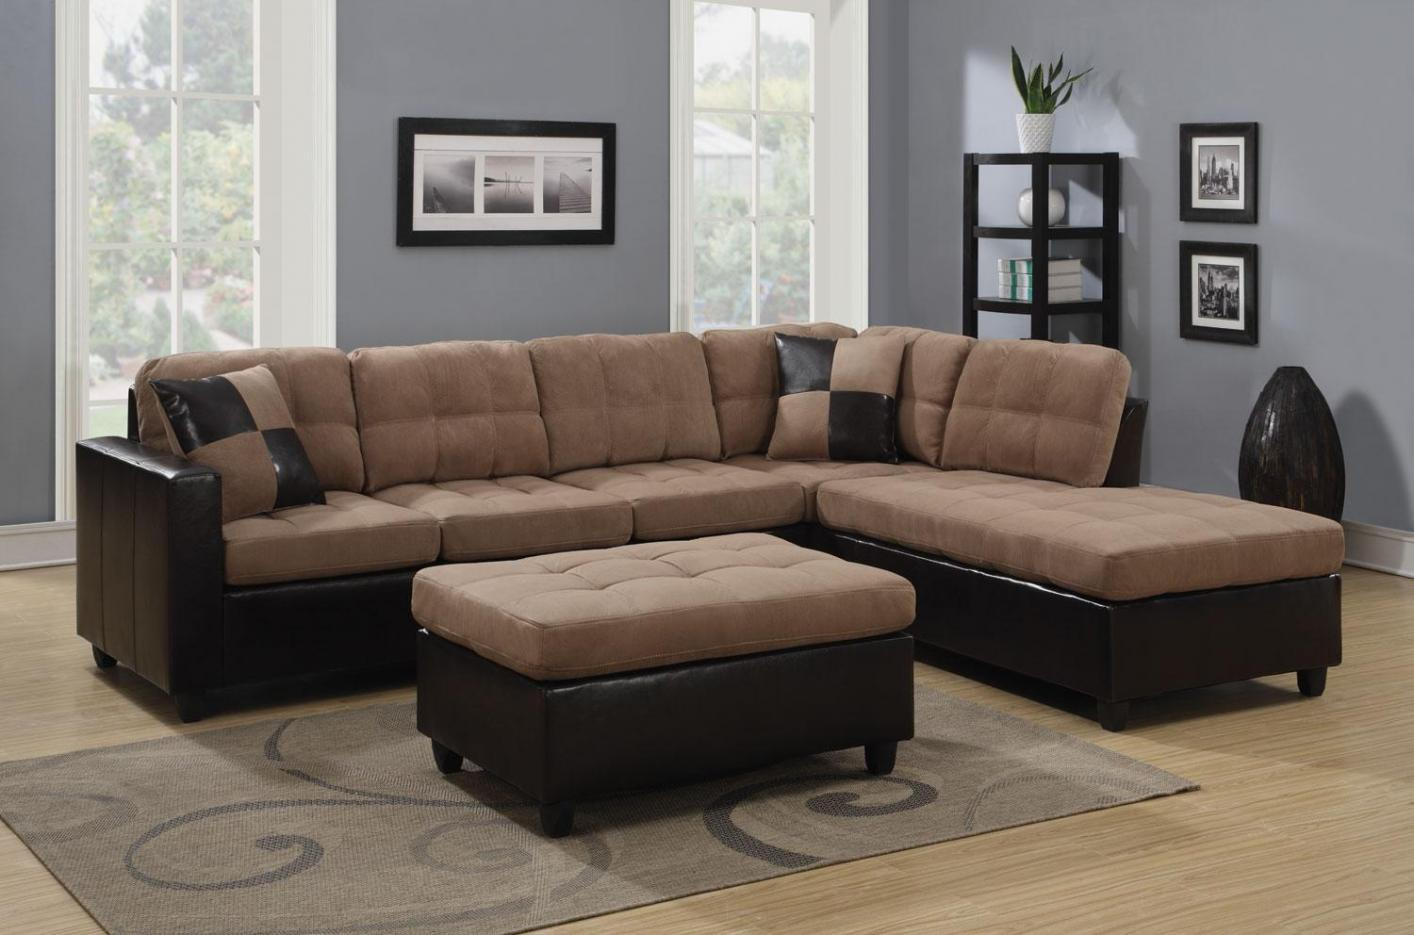 Mallory beige leather sectional sofa steal a sofa for Leather sectional sofa